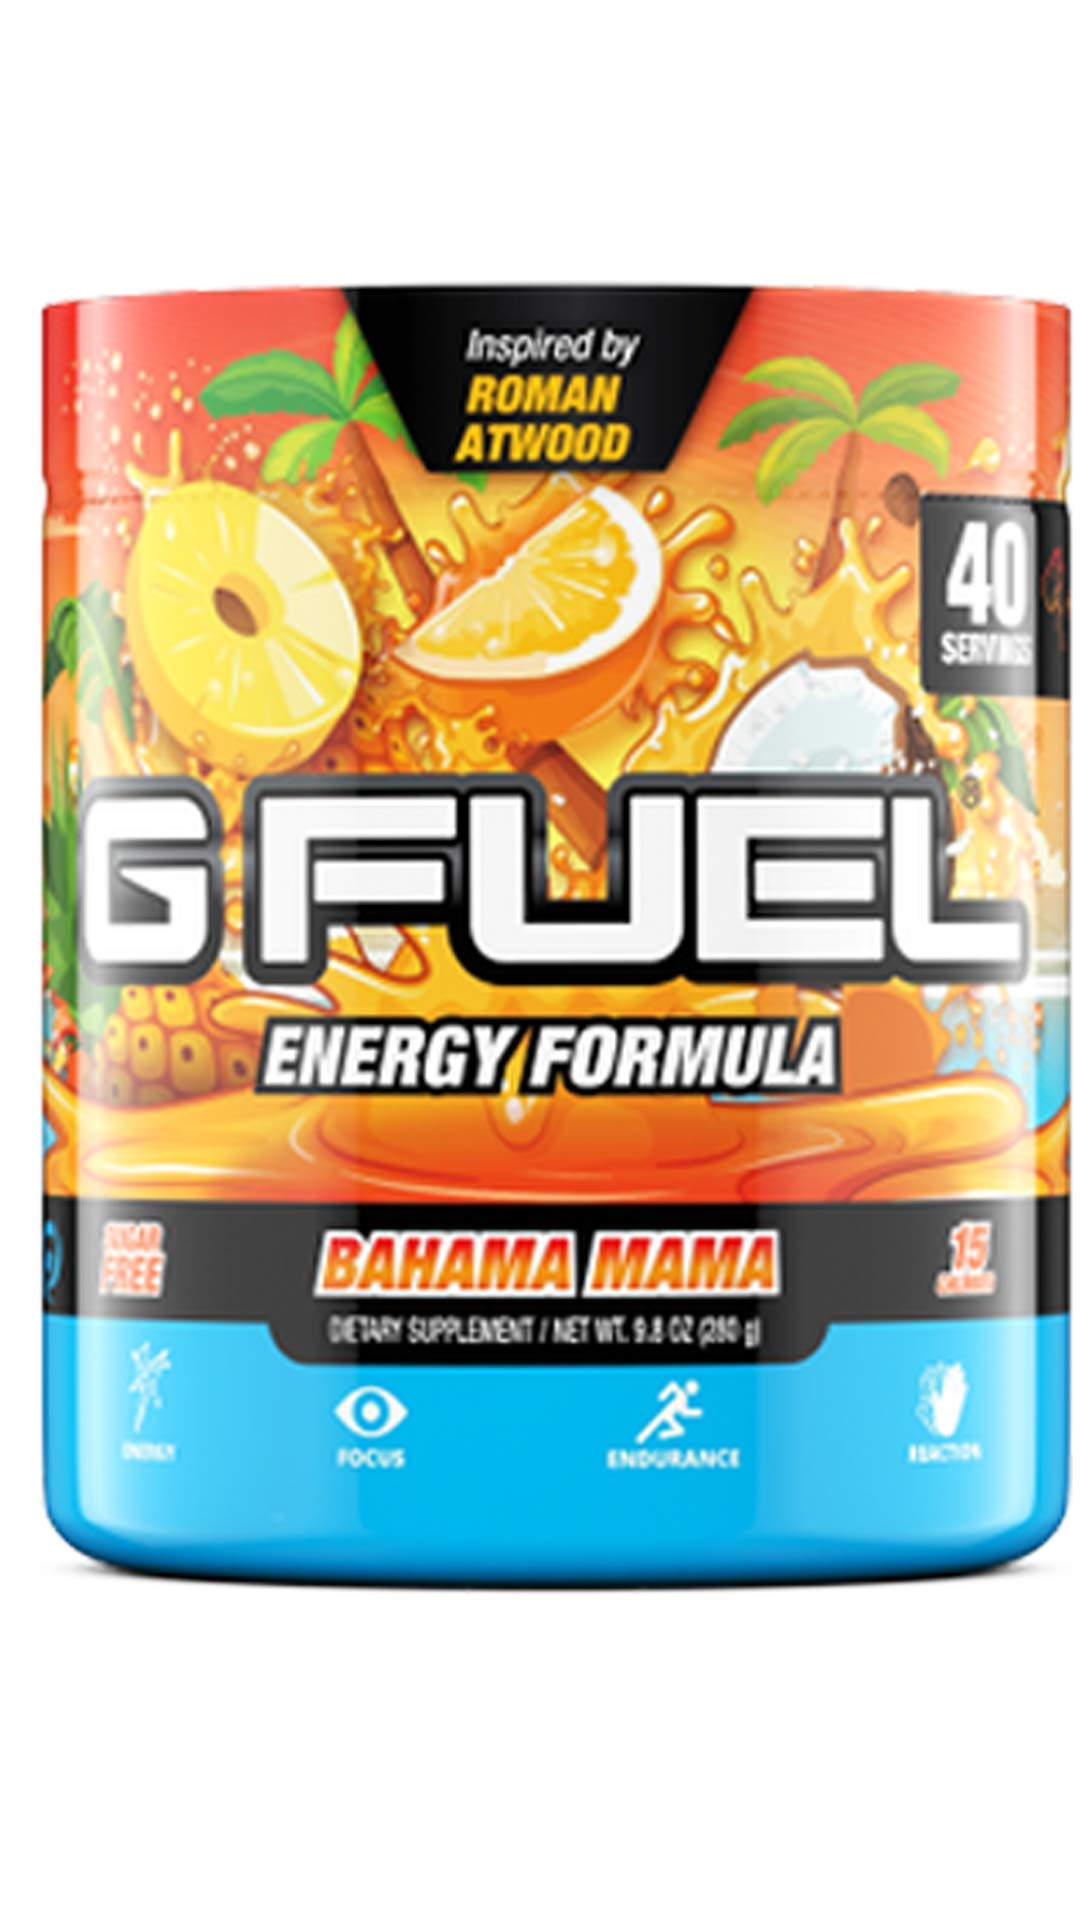 G Fuel Bahama Mama Tub (40 Servings) Elite Energy and Endurance Powder 9.8 oz. Inspired by Roman Atwood